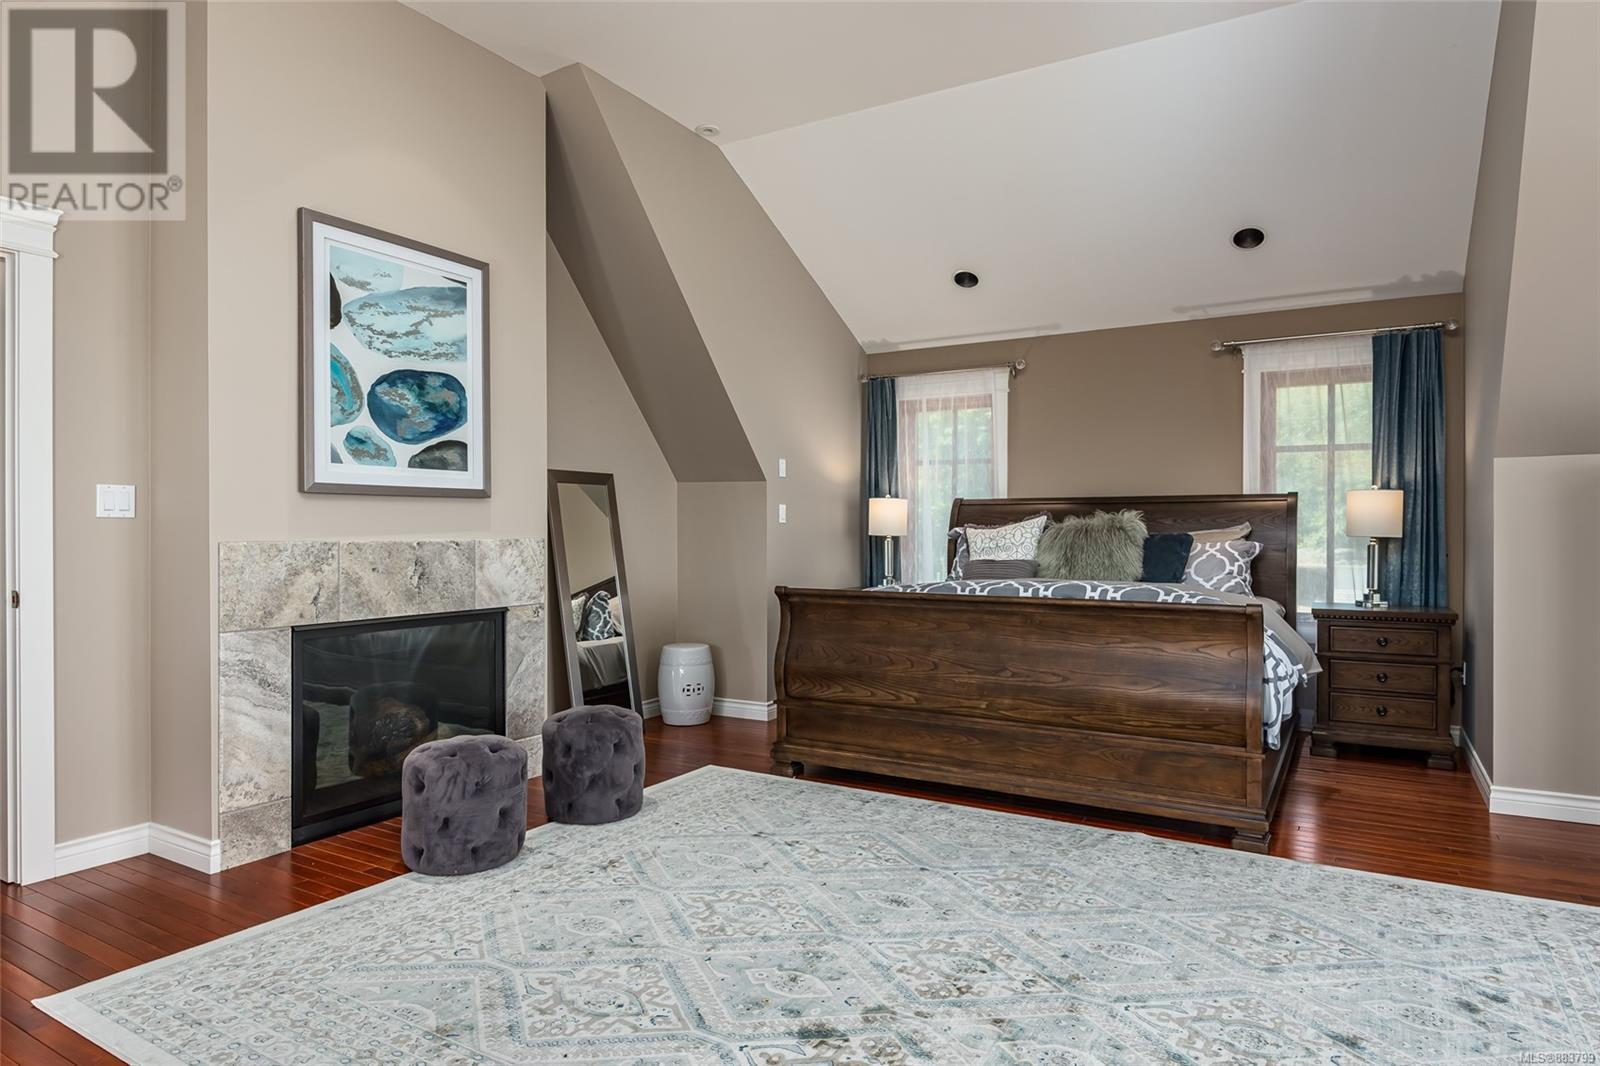 MLS® #883799 - Courtenay House For sale Image #45